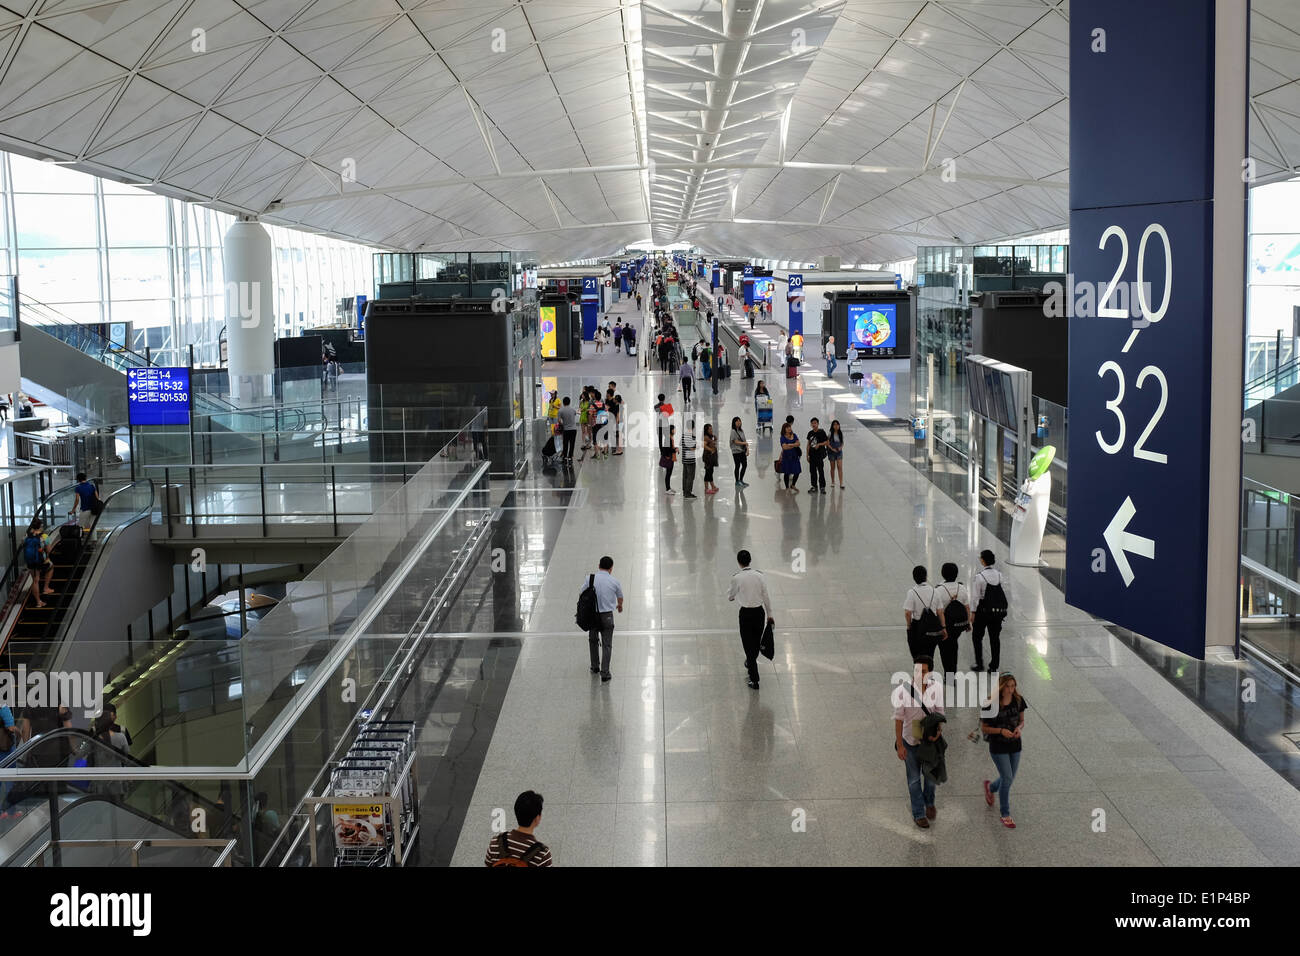 Departure area of Hong Kong International Airport located on the island of Chek Lap Kok. Stock Photo